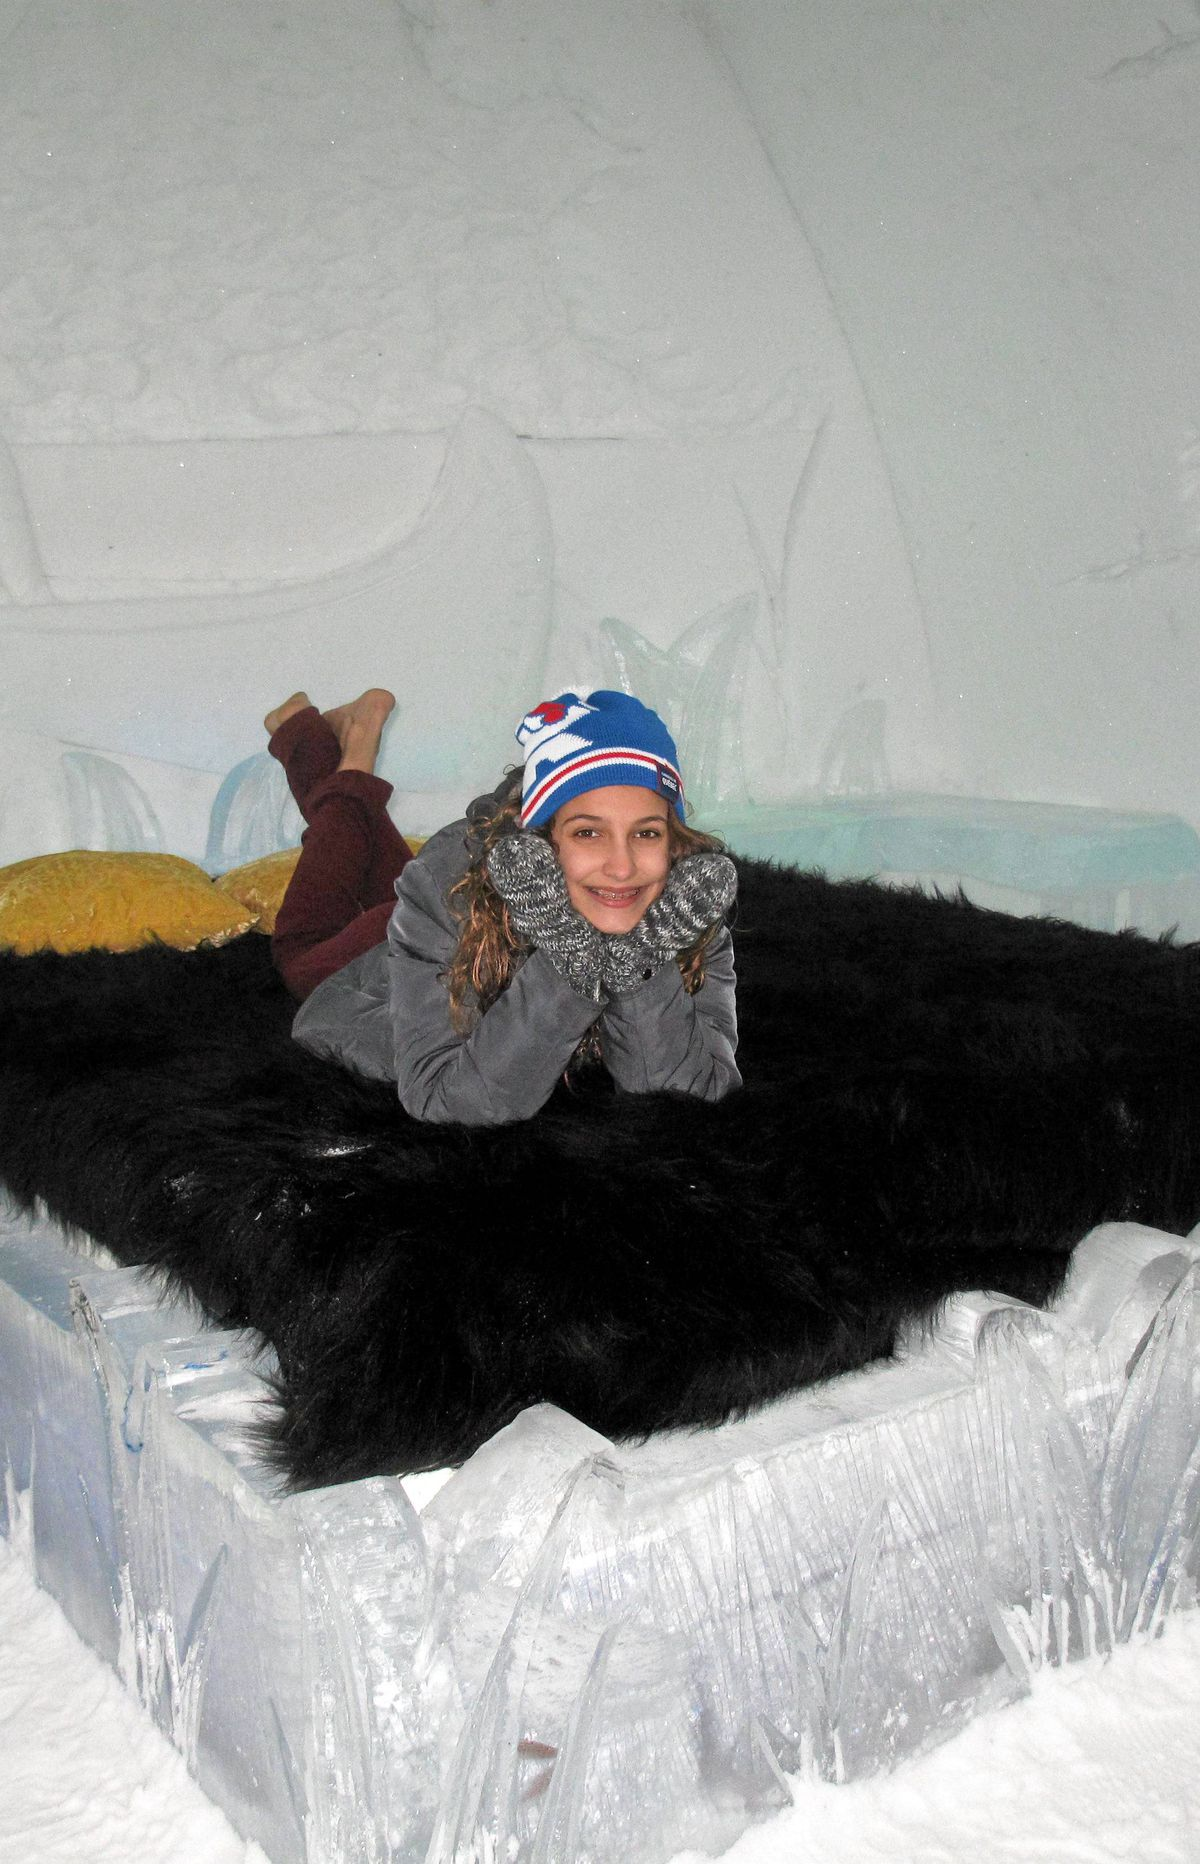 Want to sleep in a castle of ice? Hotel de Glace, a short drive outside Quebec City, is open until March 25. (Yes, there is a real mattress - not just ice - under the fur throw.)